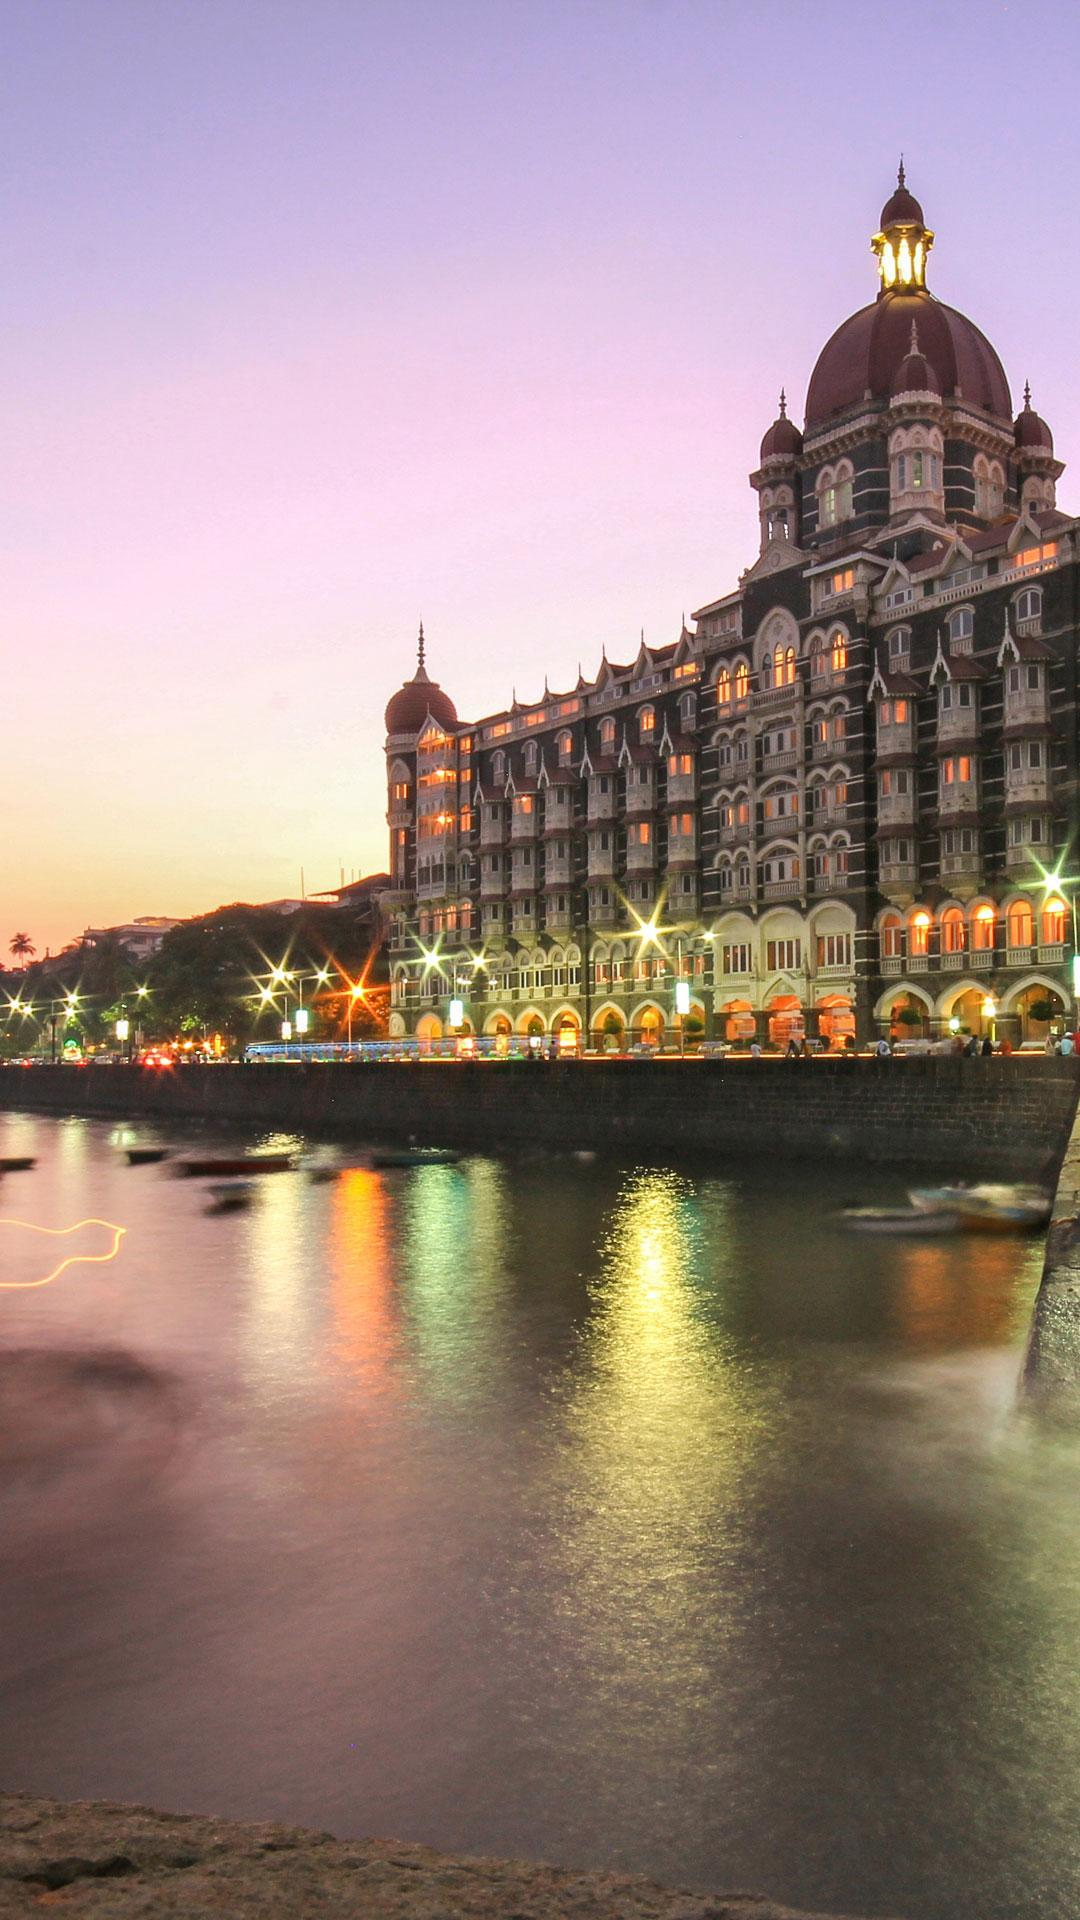 Mumbai Live Wallpaper for Android   APK Download 1080x1920